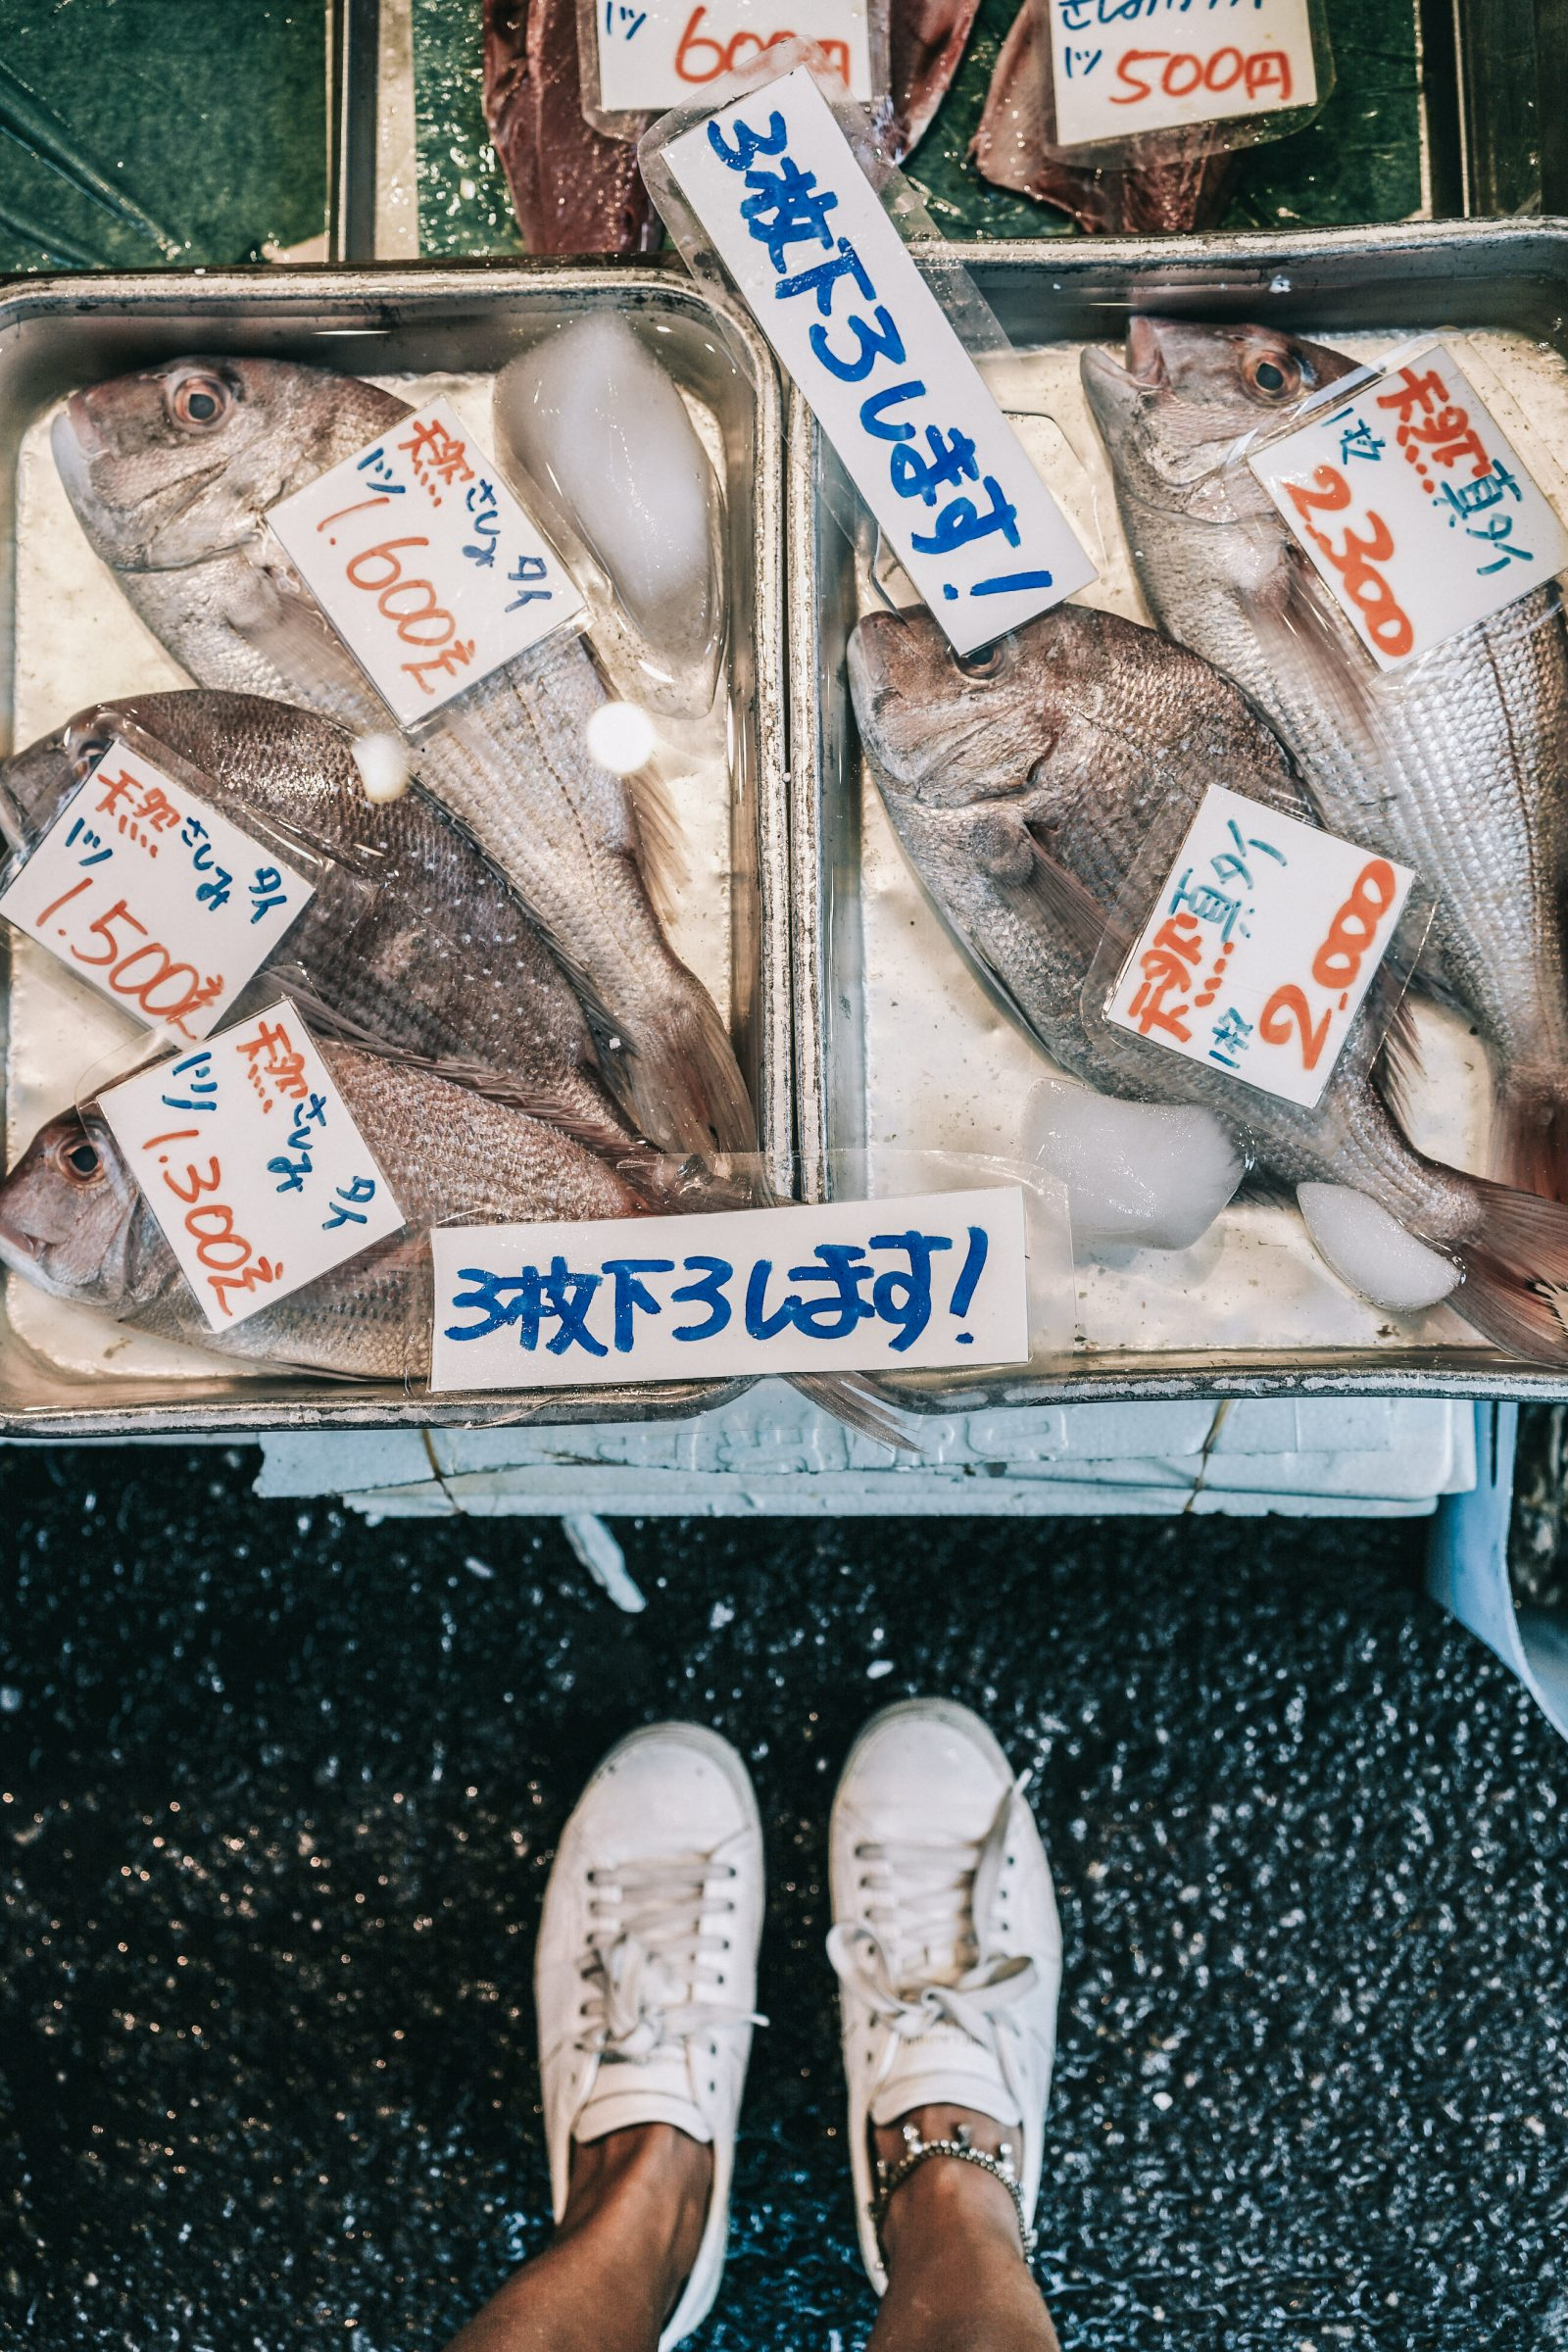 Tokyo_Travel_Guide-Fish_Market-Harajuku-Levis_Denim_Skirt-Off_The_Shoulders_Top-YSL_Sneakers-Outfit-Collage_Vintage-Street_Style-79